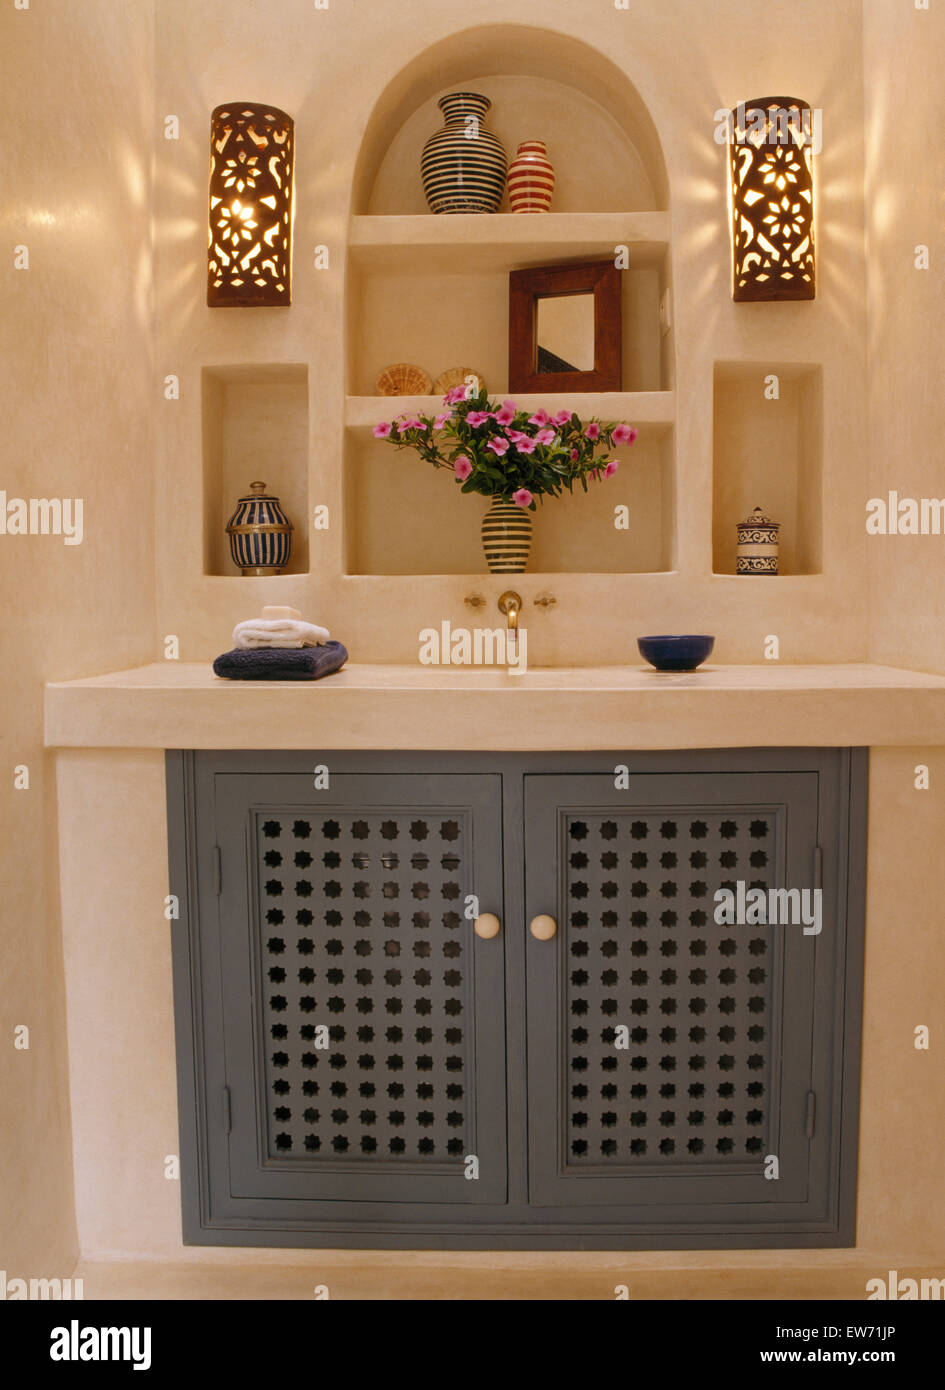 Moroccan Bathroom Wall Lights : Wall lights on either side of alcove shelves above cupboard with blue Stock Photo, Royalty Free ...